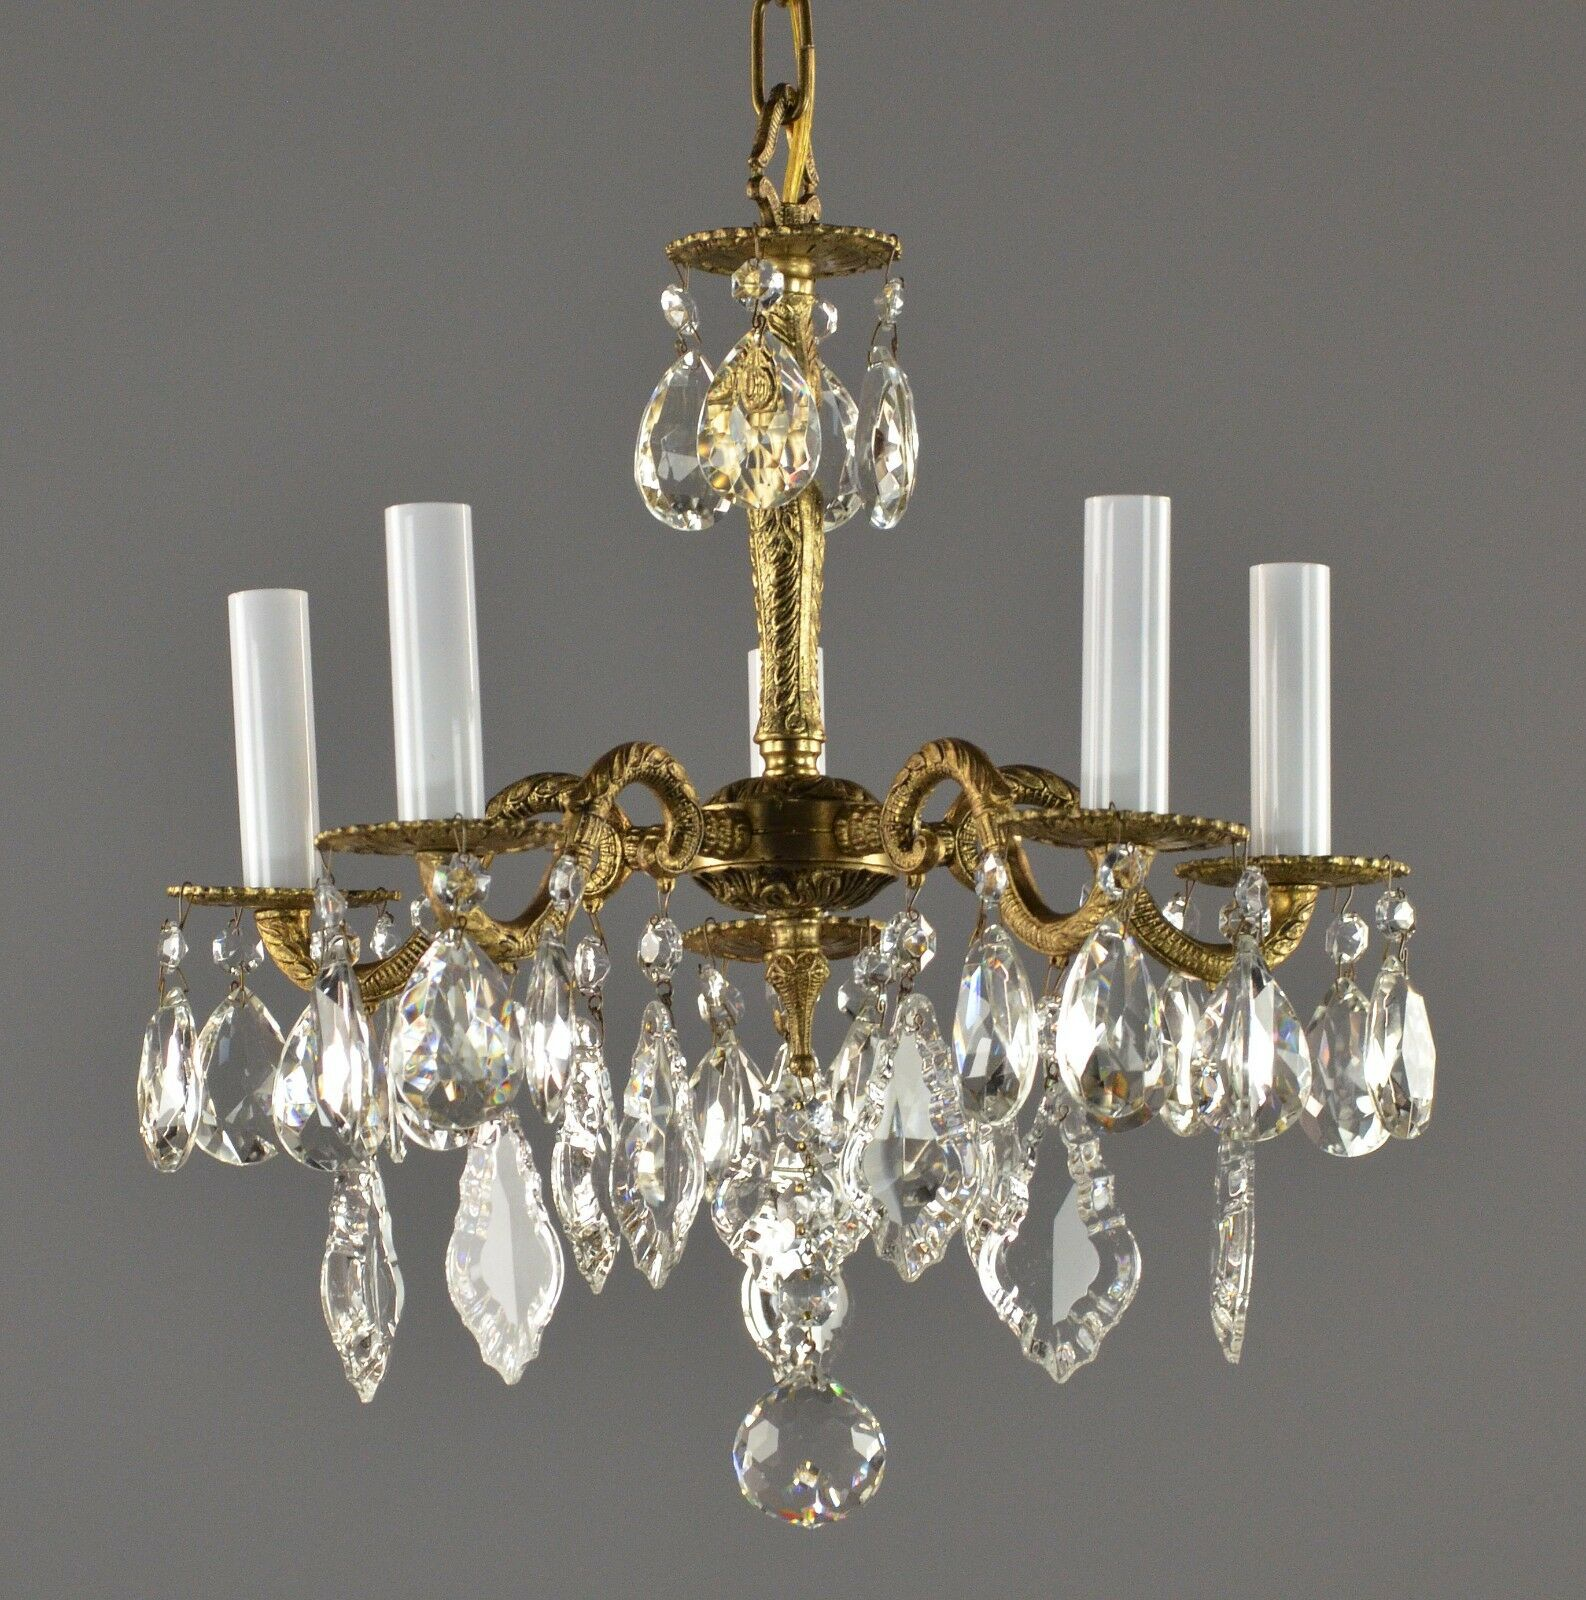 Spanish Brass & Crystal Chandelier c1950 Vintage Antique Ceiling French Style